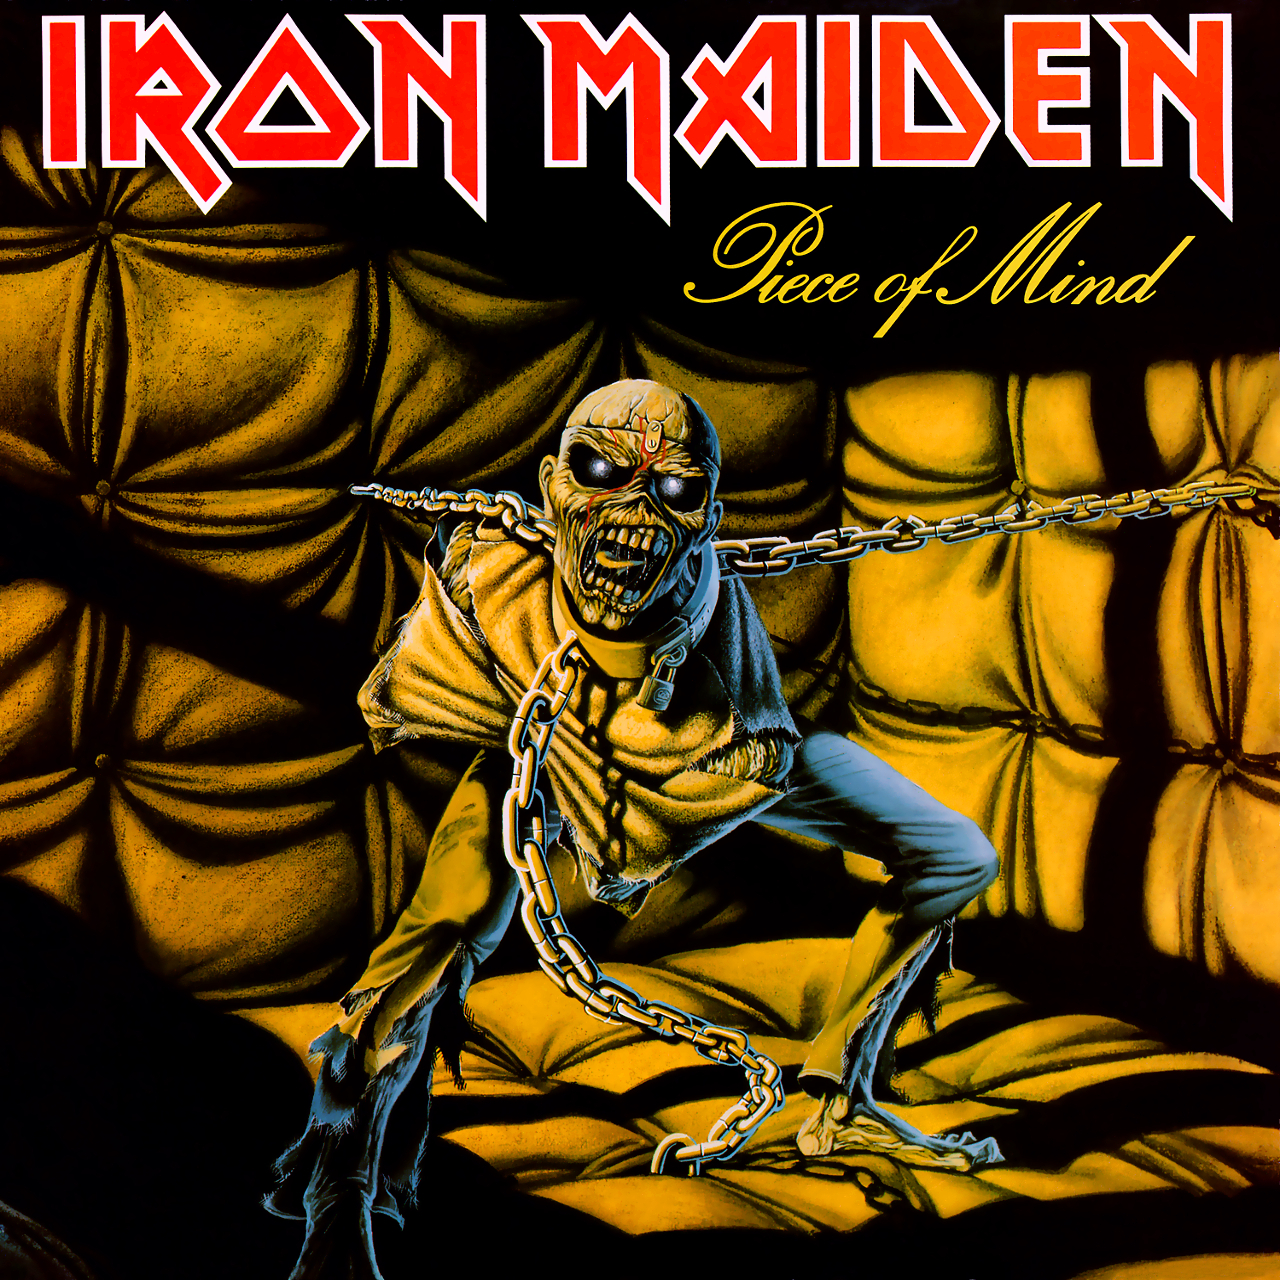 Iron Maiden Images Piece Of Mind Hd Wallpaper And Background Photos